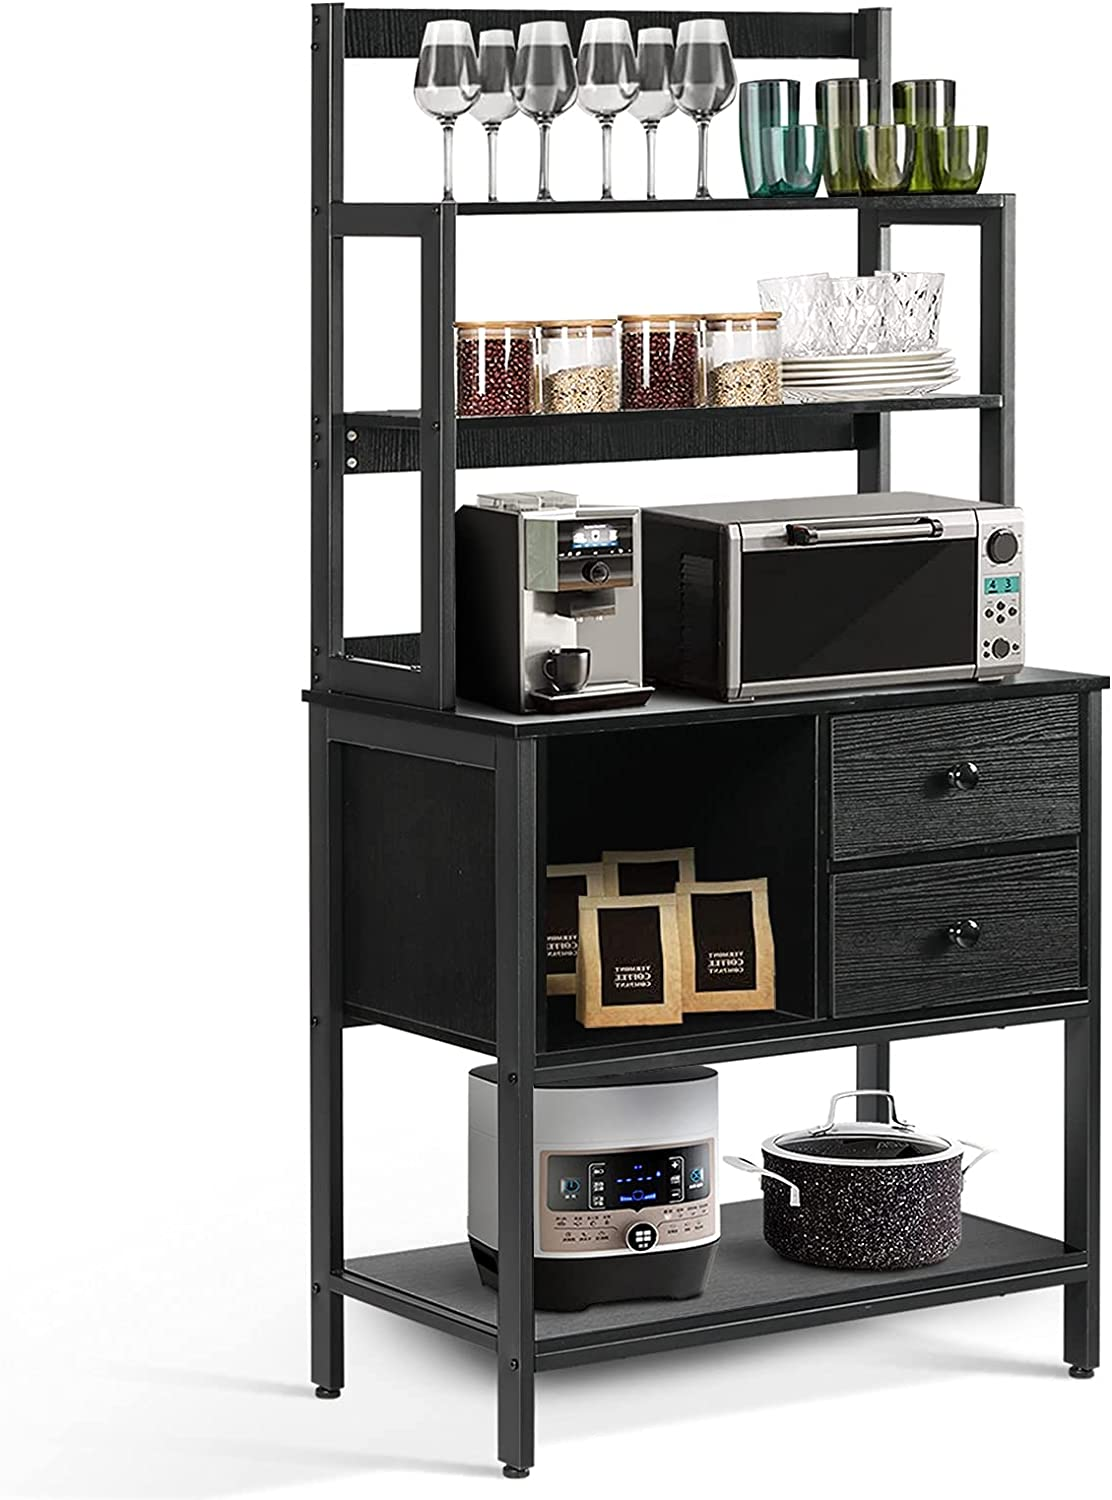 6-Tier Kitchen Bakers Rack Popular product with Storage Bar Coffee 2 Table Tucson Mall